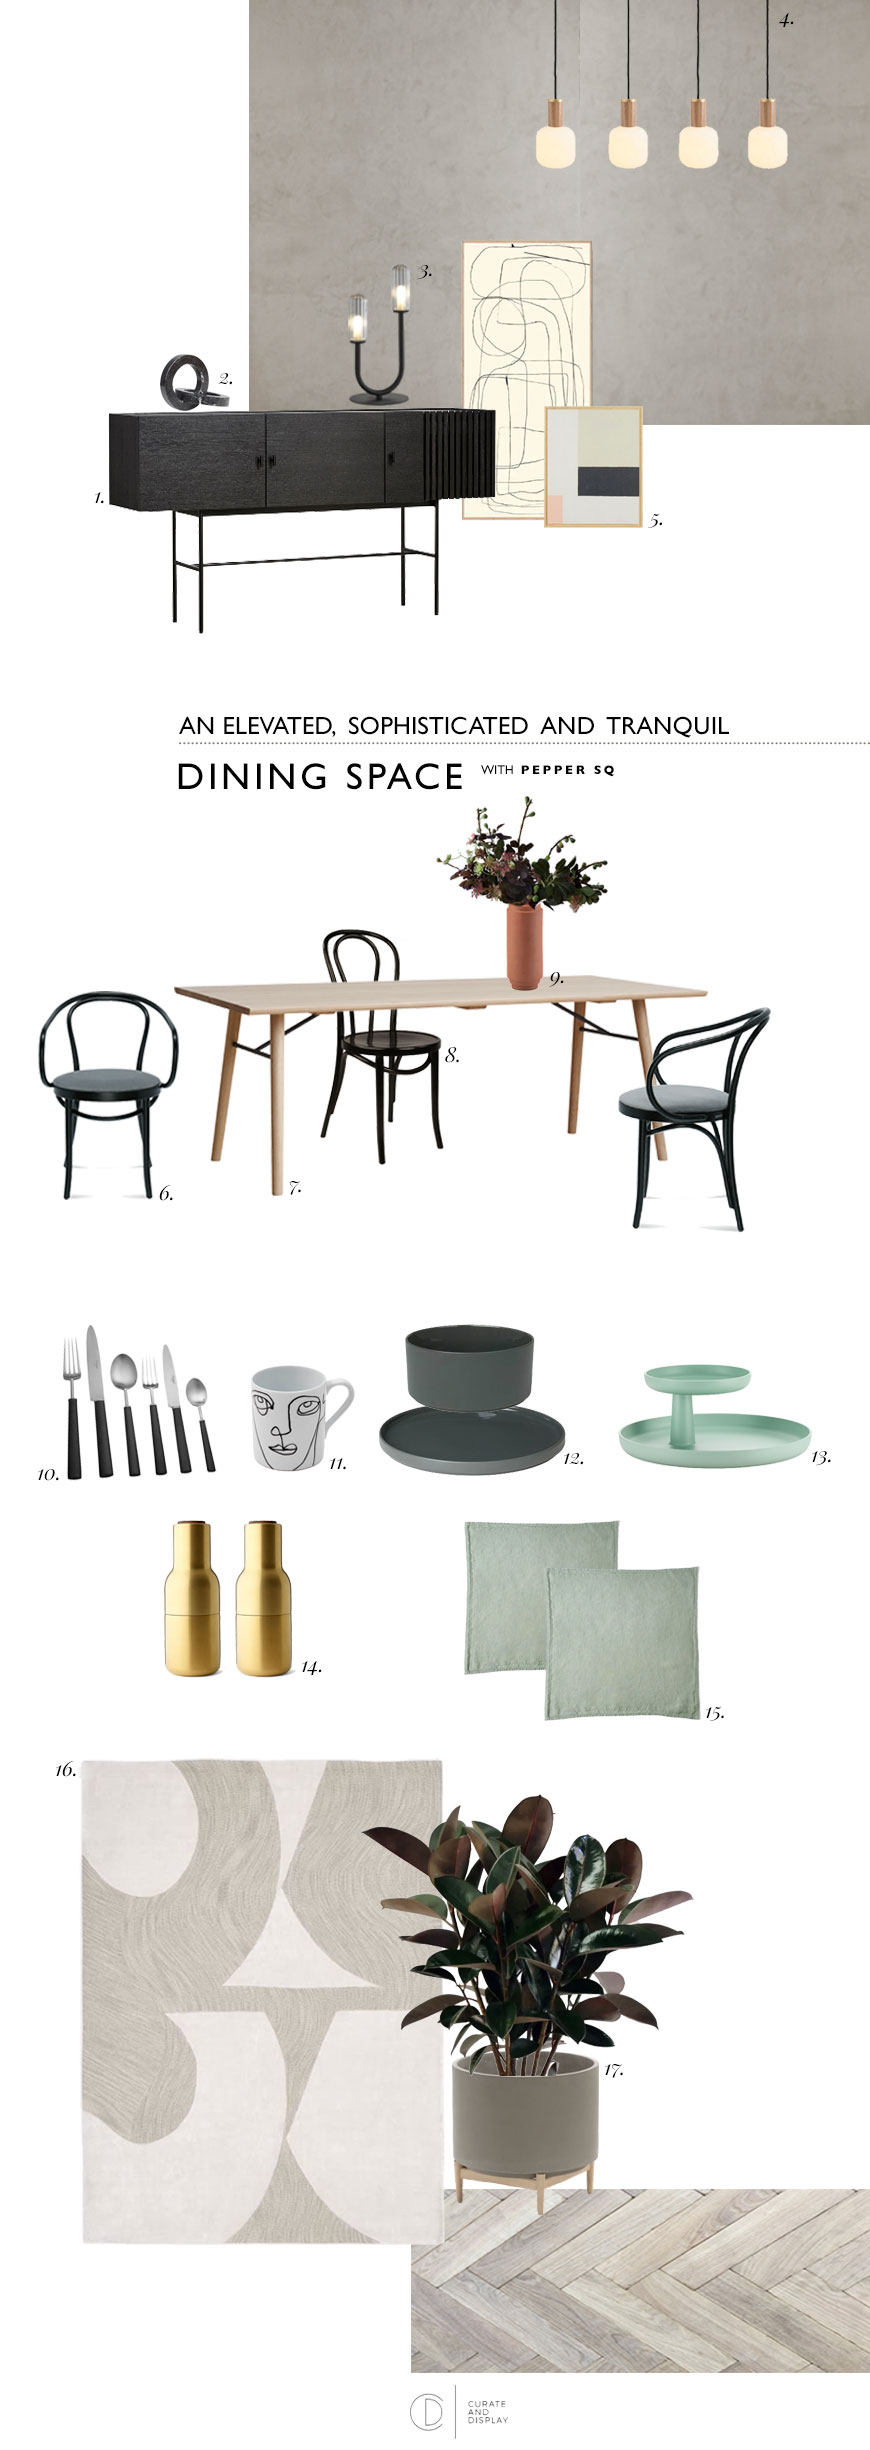 A visual moodboard of an elevated, sophisticated and tranquil dining room with Nordic influences and touches of pale green.